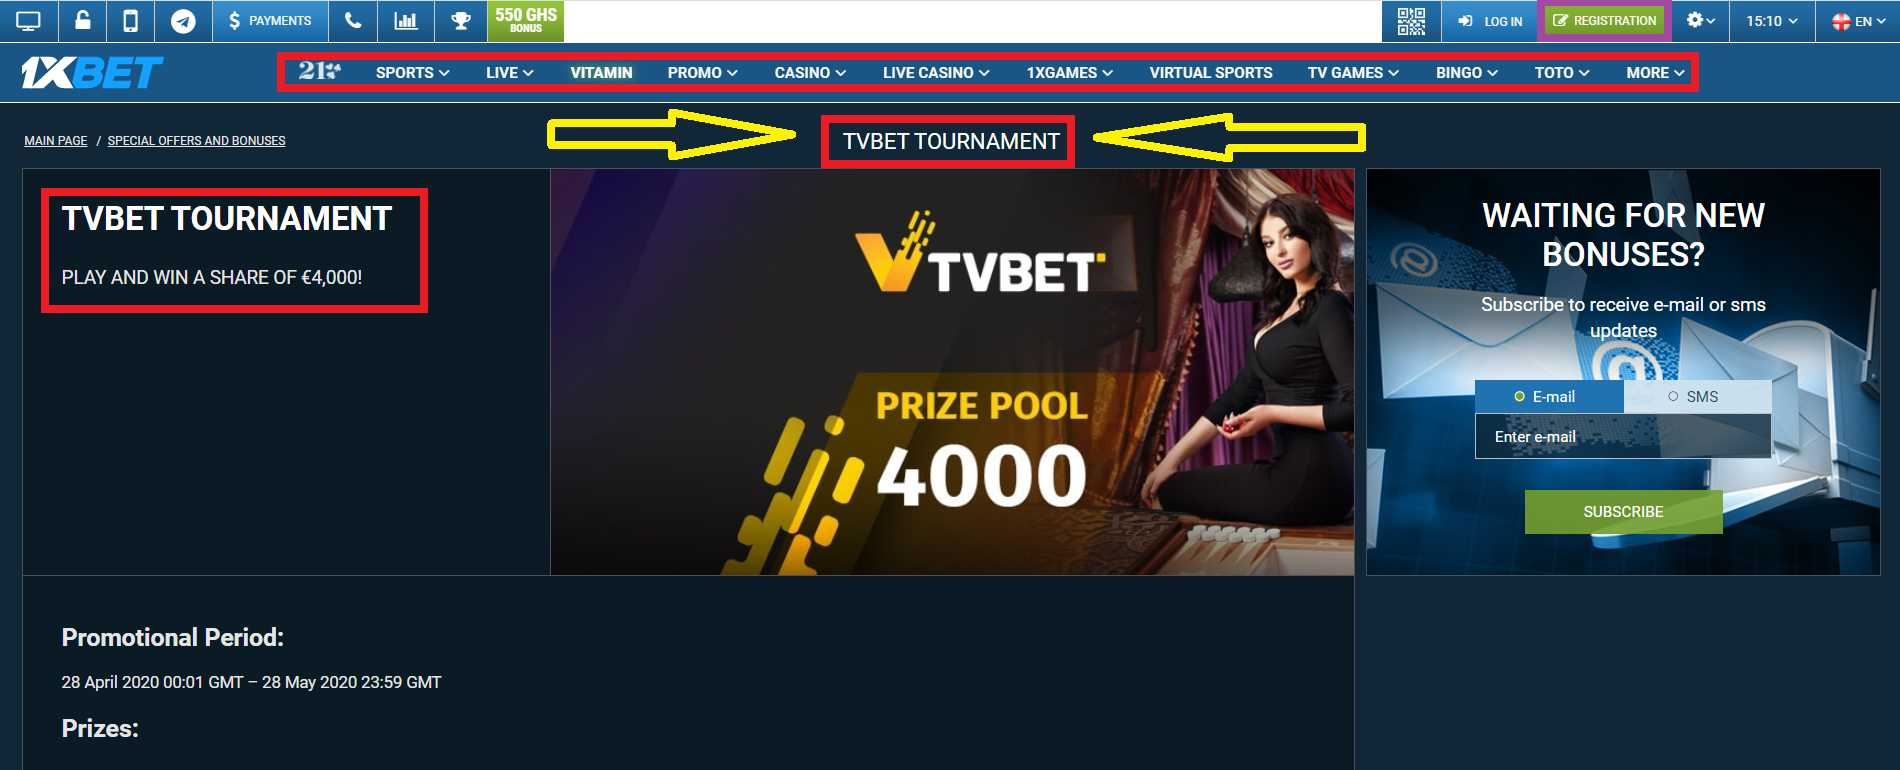 1xBet first deposit bonus for every new customer